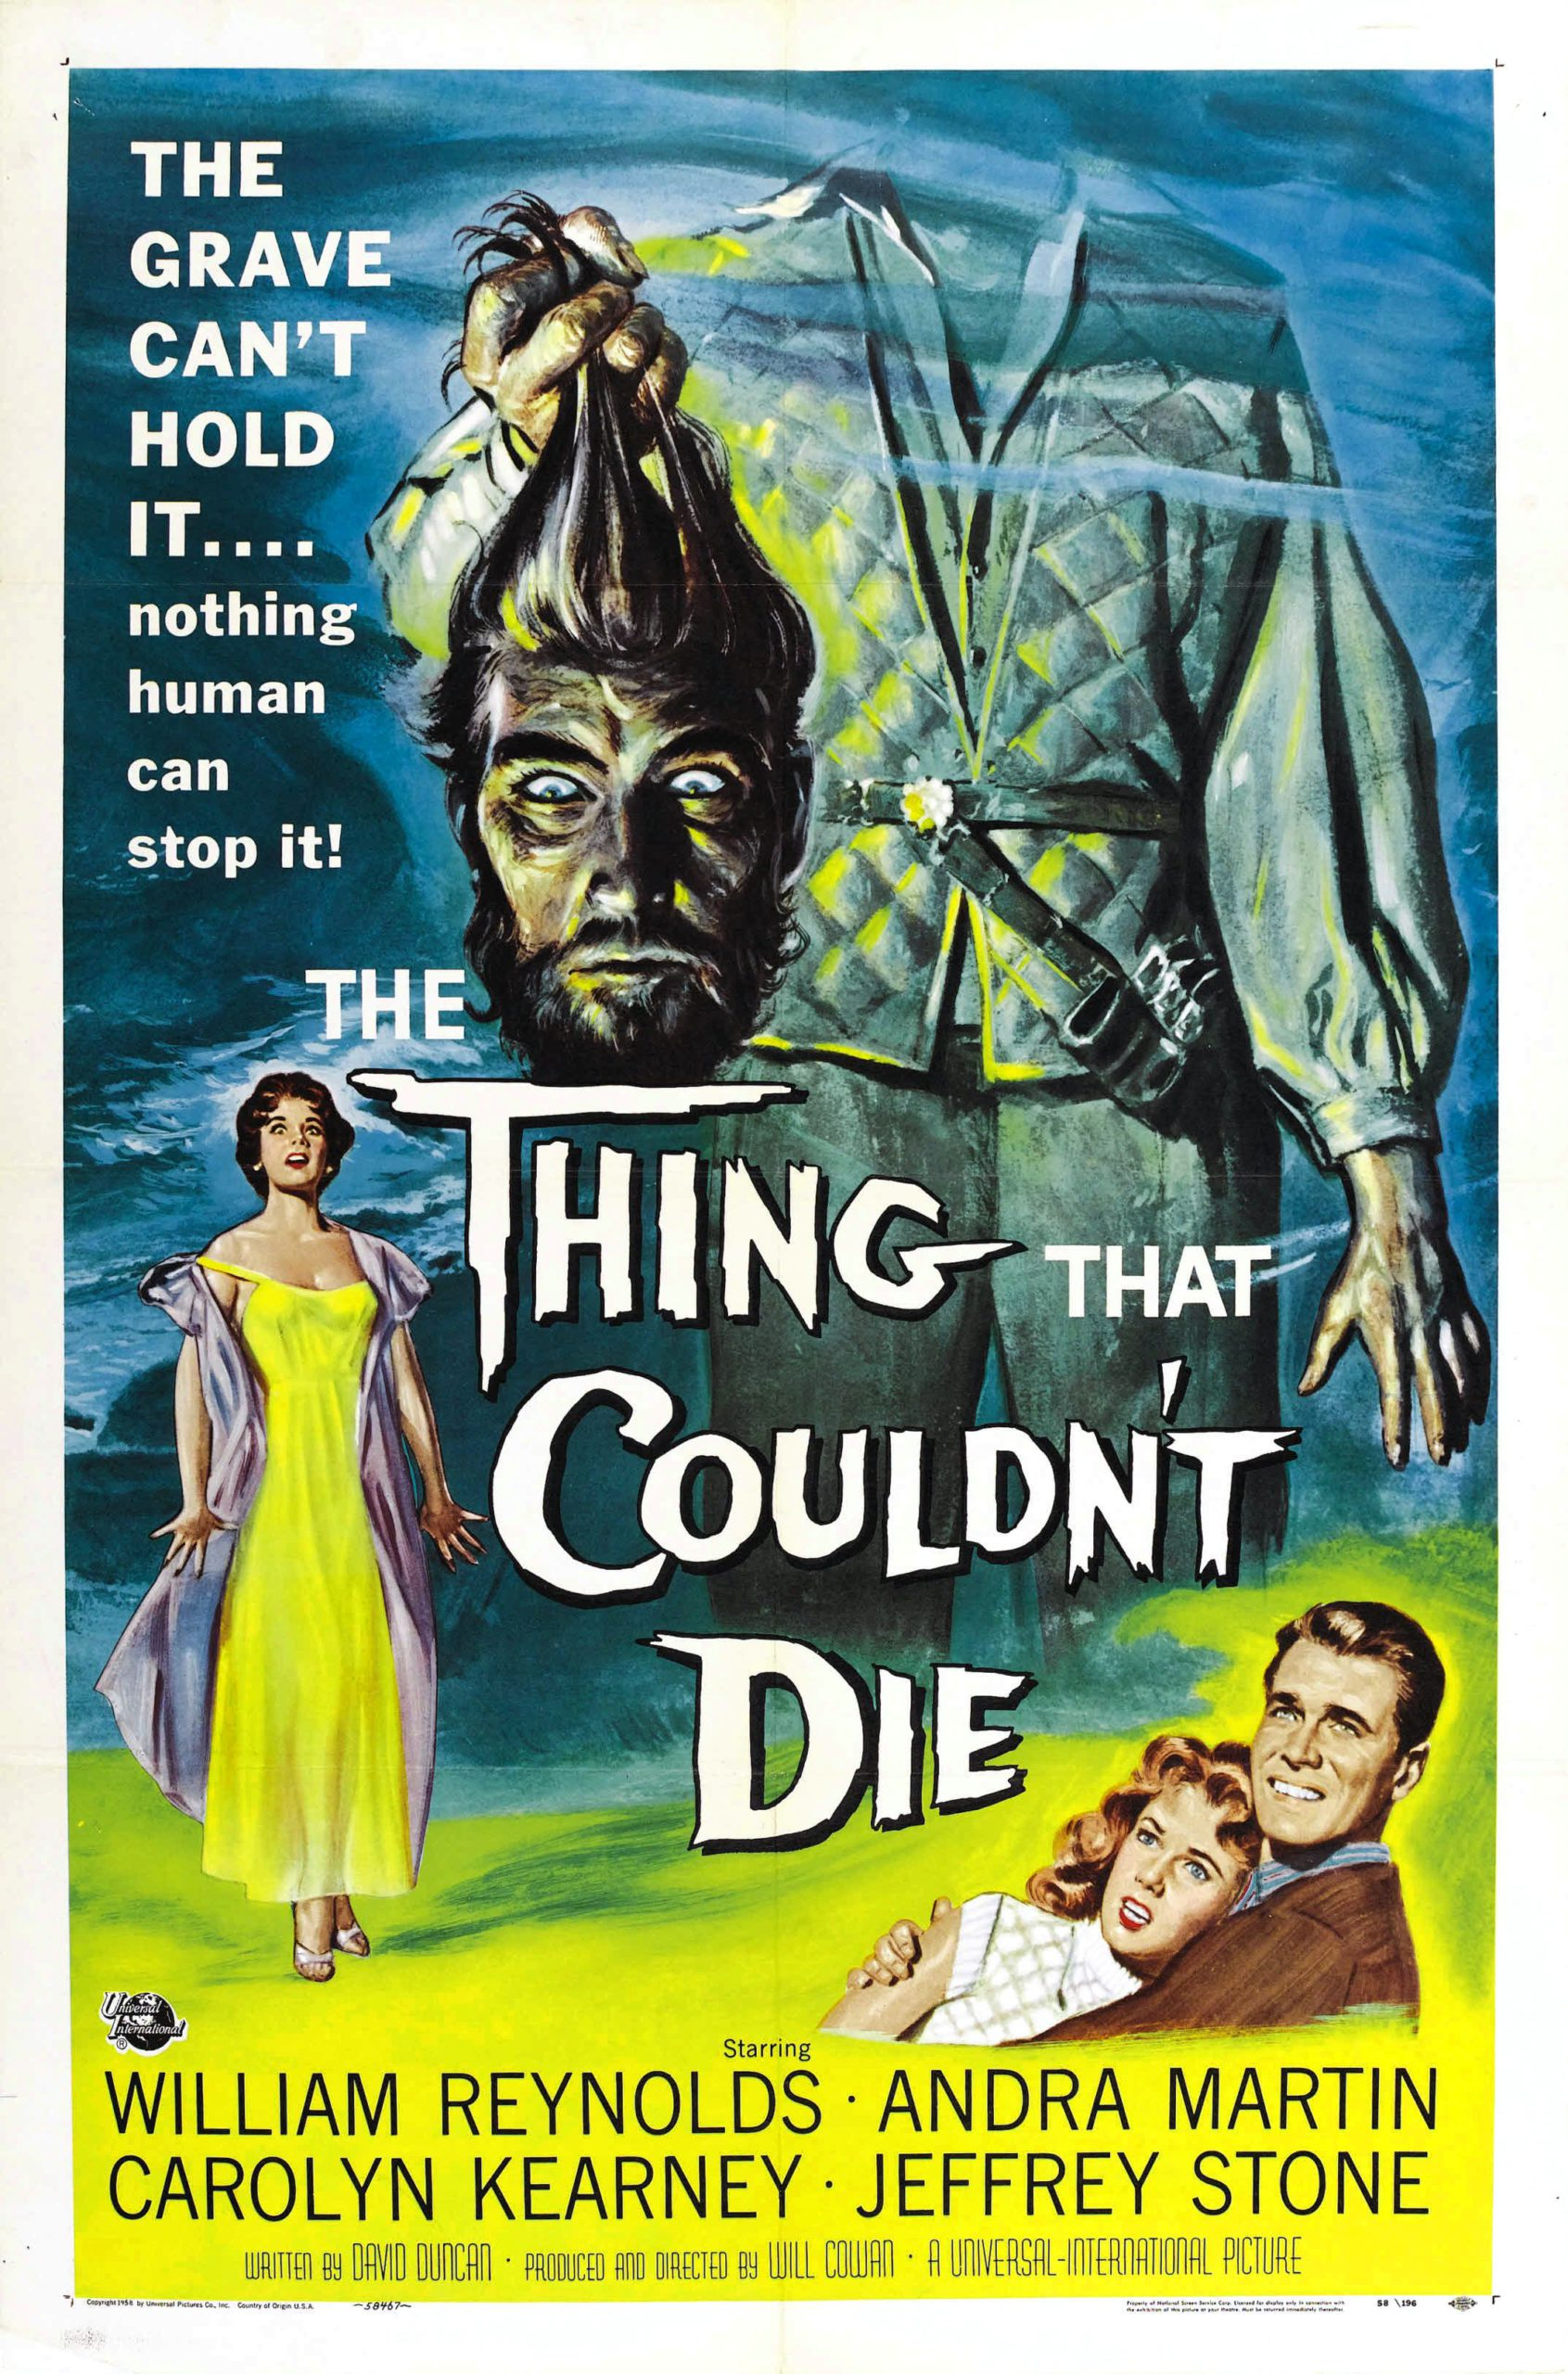 The Thing that Couldn't Die, starring Andra Martin, Carolyn Kearney, William Reynolds, Robin Hughes, Jeffrey Stone